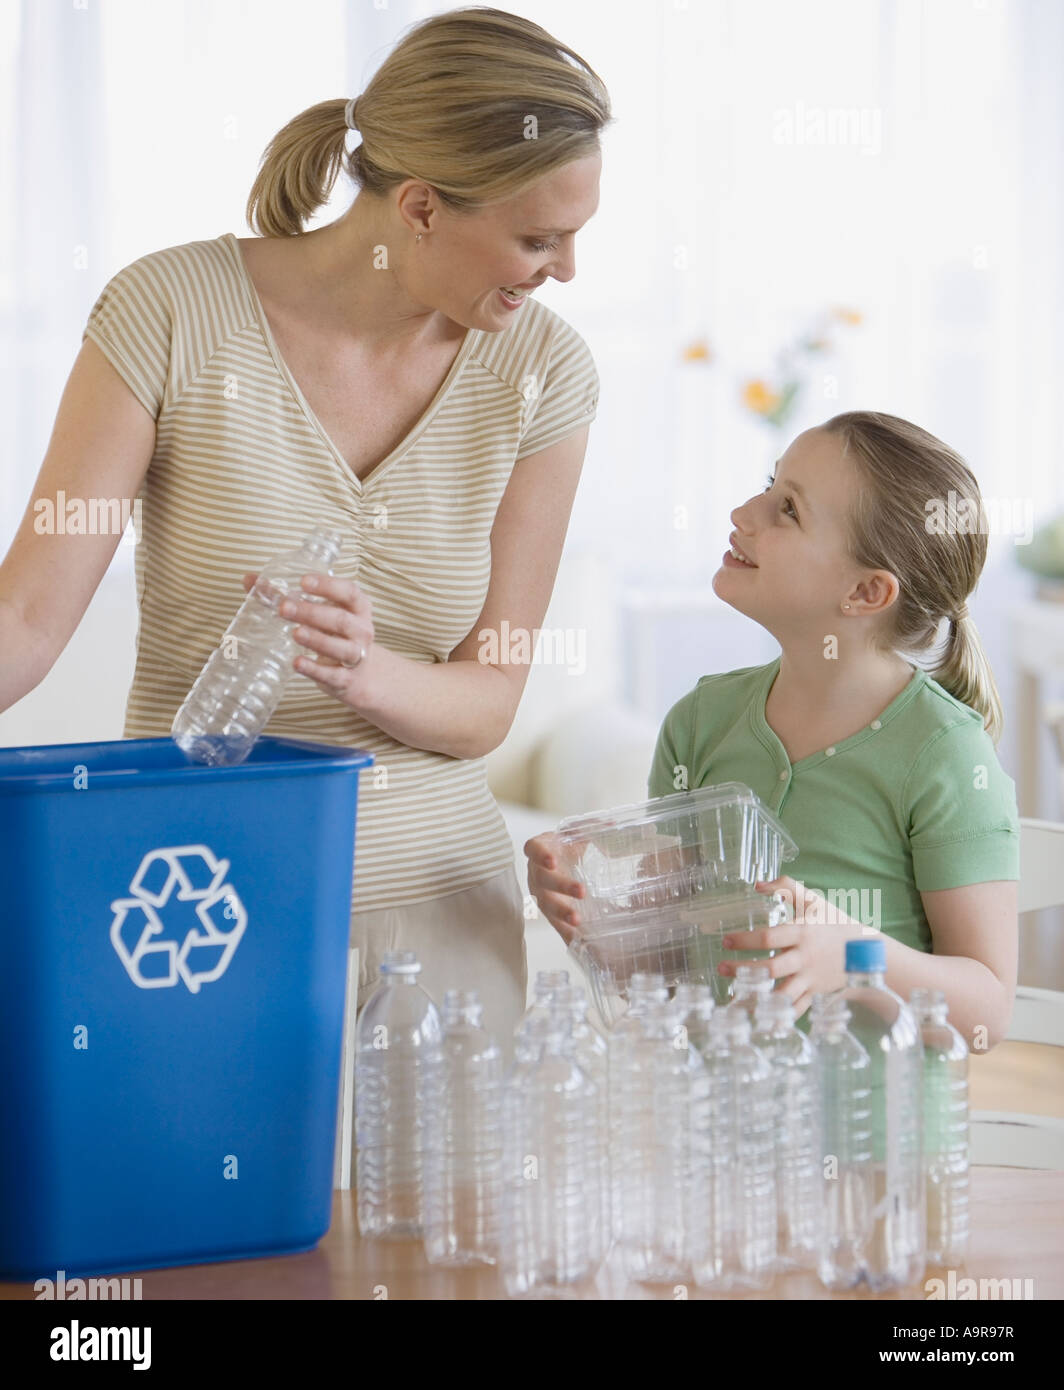 Mother and daughter filling recycle bin - Stock Image